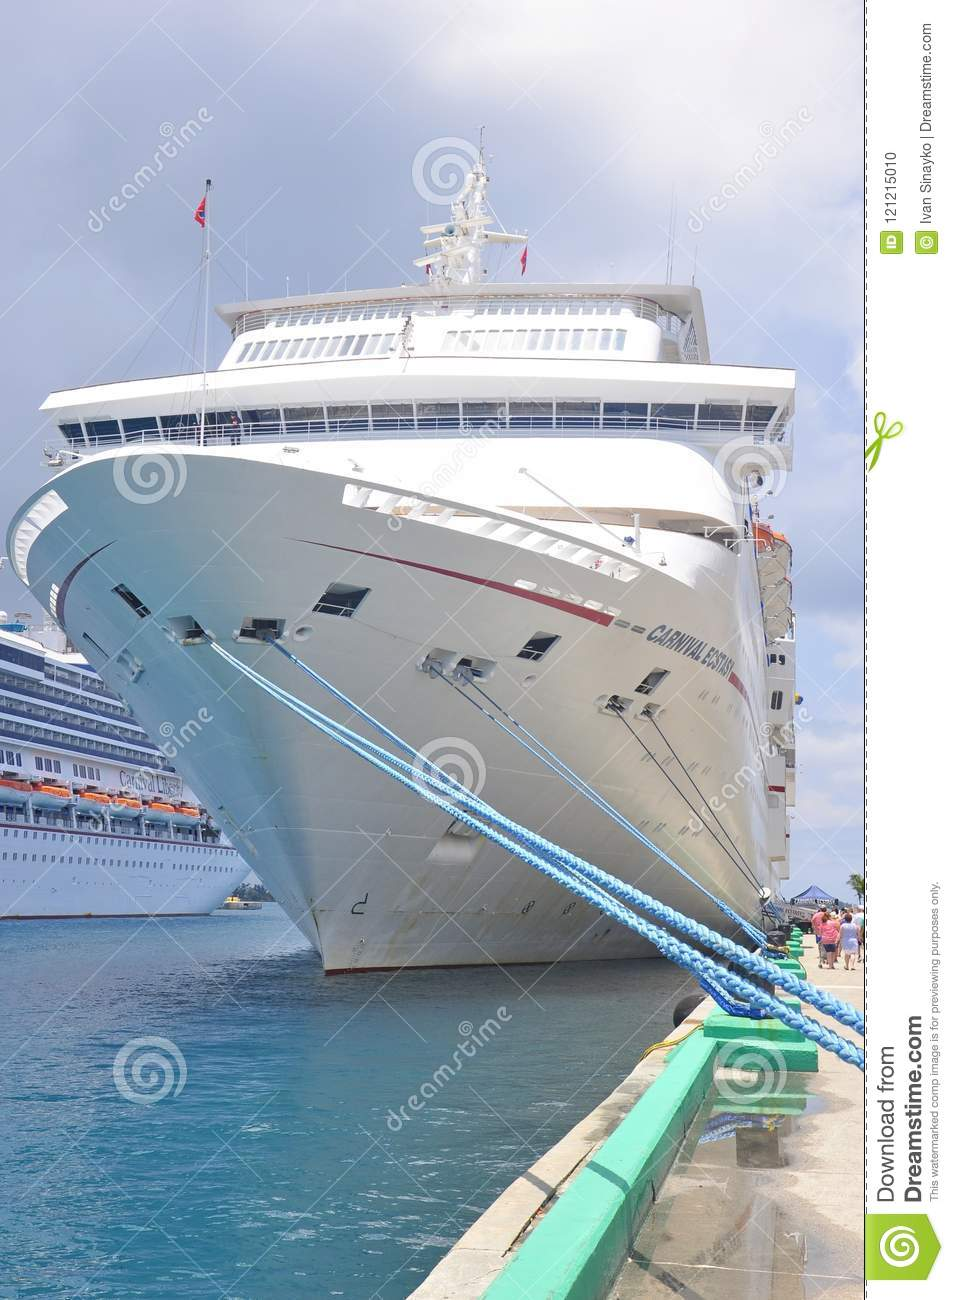 Carnival Ecstasy Cruise Ship Docked Editorial Image